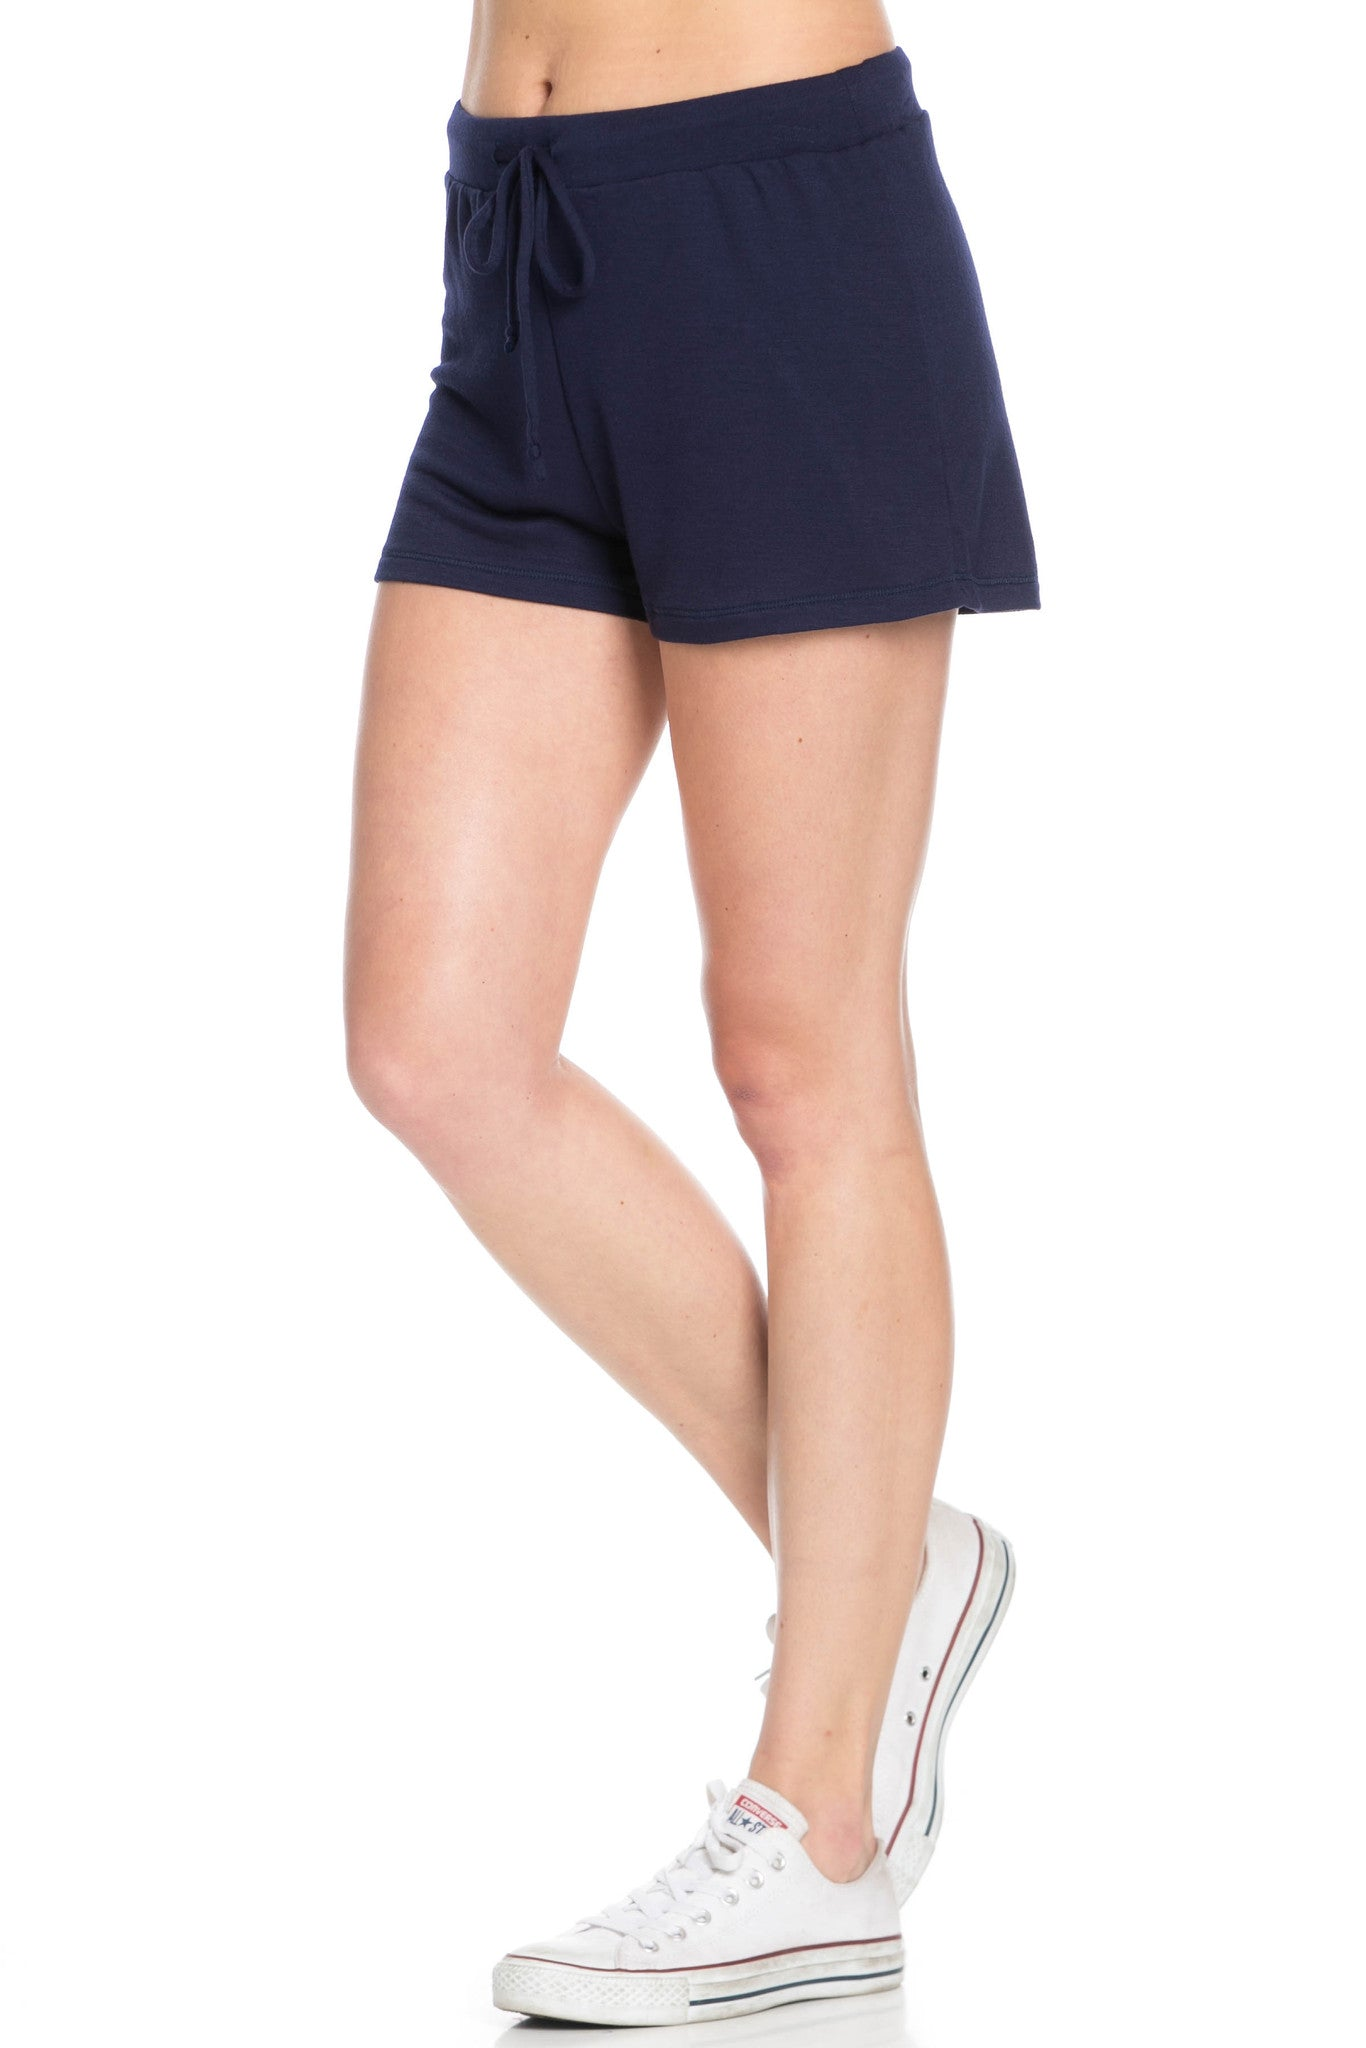 Lightweight French Terry Navy Track Shorts - Shorts - My Yuccie - 2